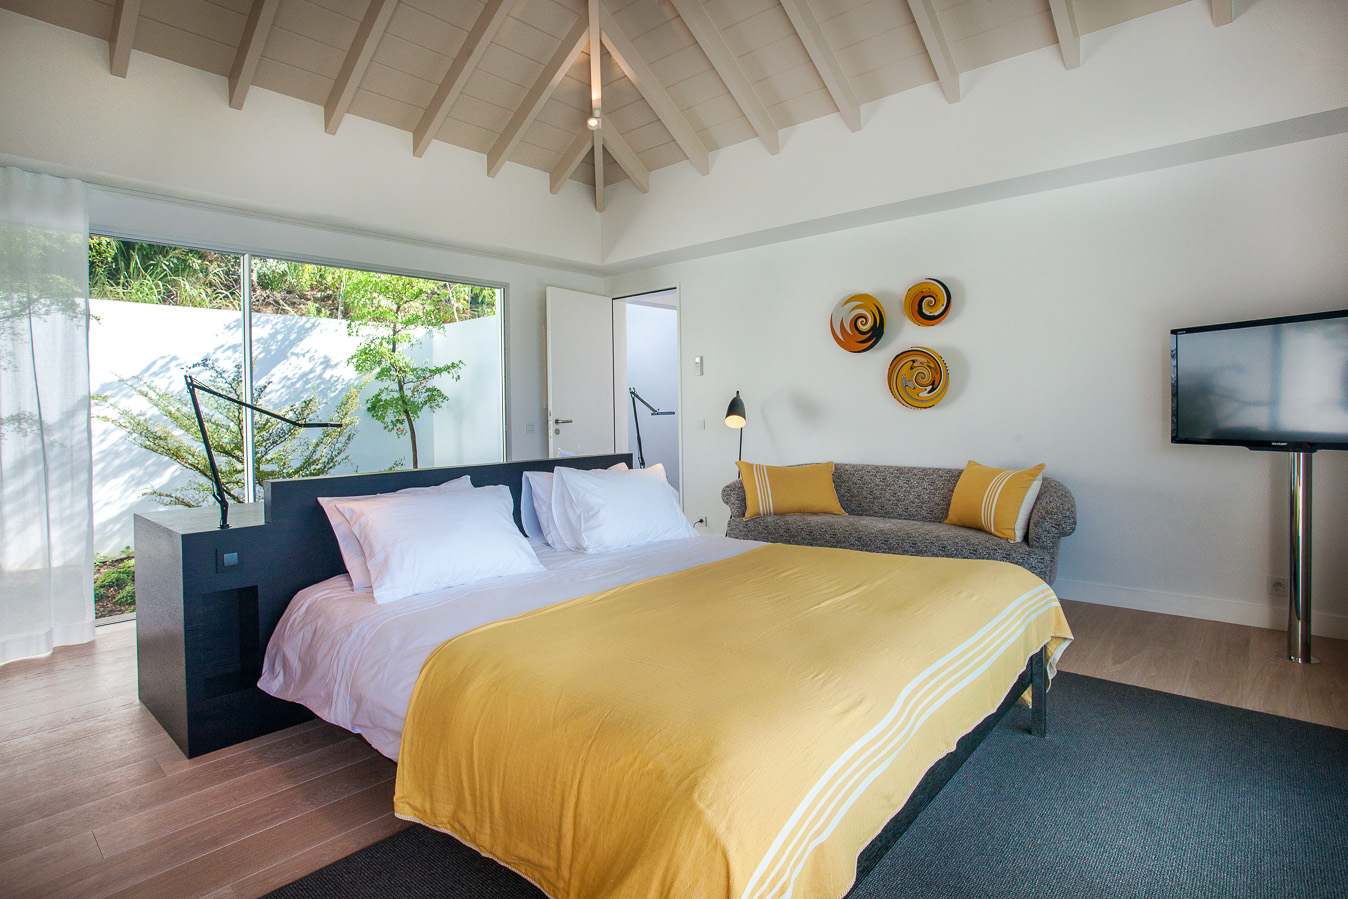 Villa Wings - 4 Bedroom Villa for Rent St Barth Ideal for Architecture Lovers - Bedroom